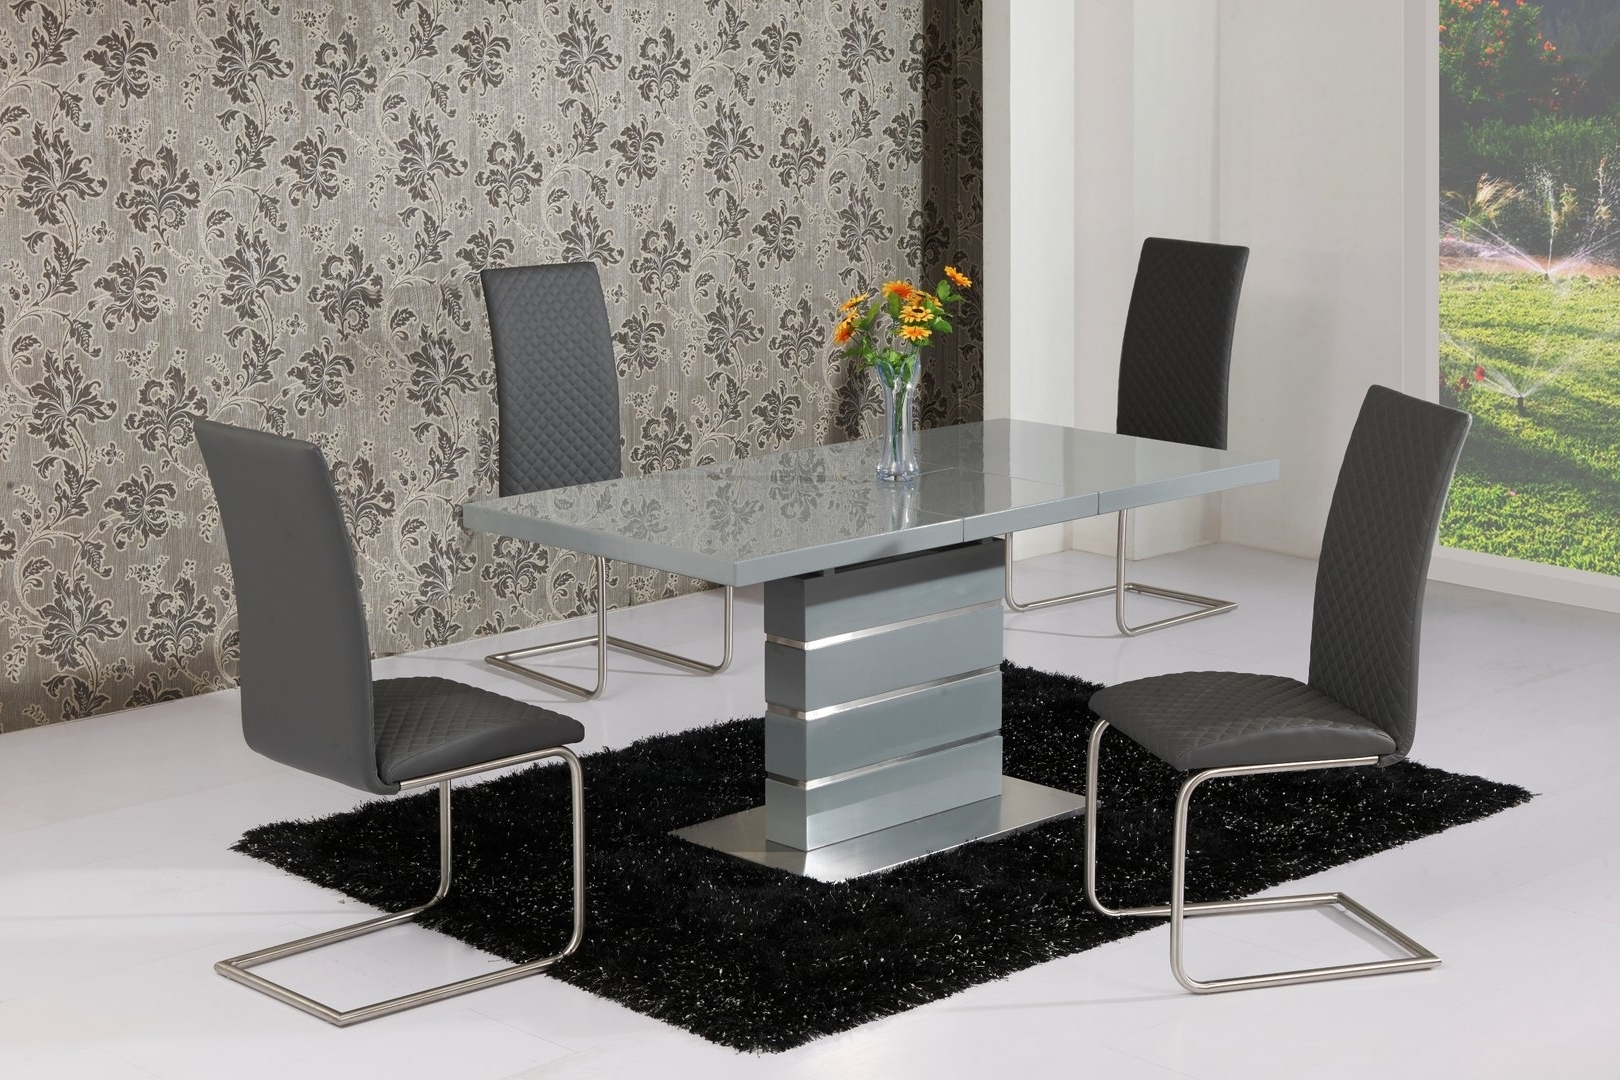 Extending Gloss Dining Tables Regarding Most Popular Extending Grey High Gloss Dining Table And 4 Grey Chairs (View 13 of 25)